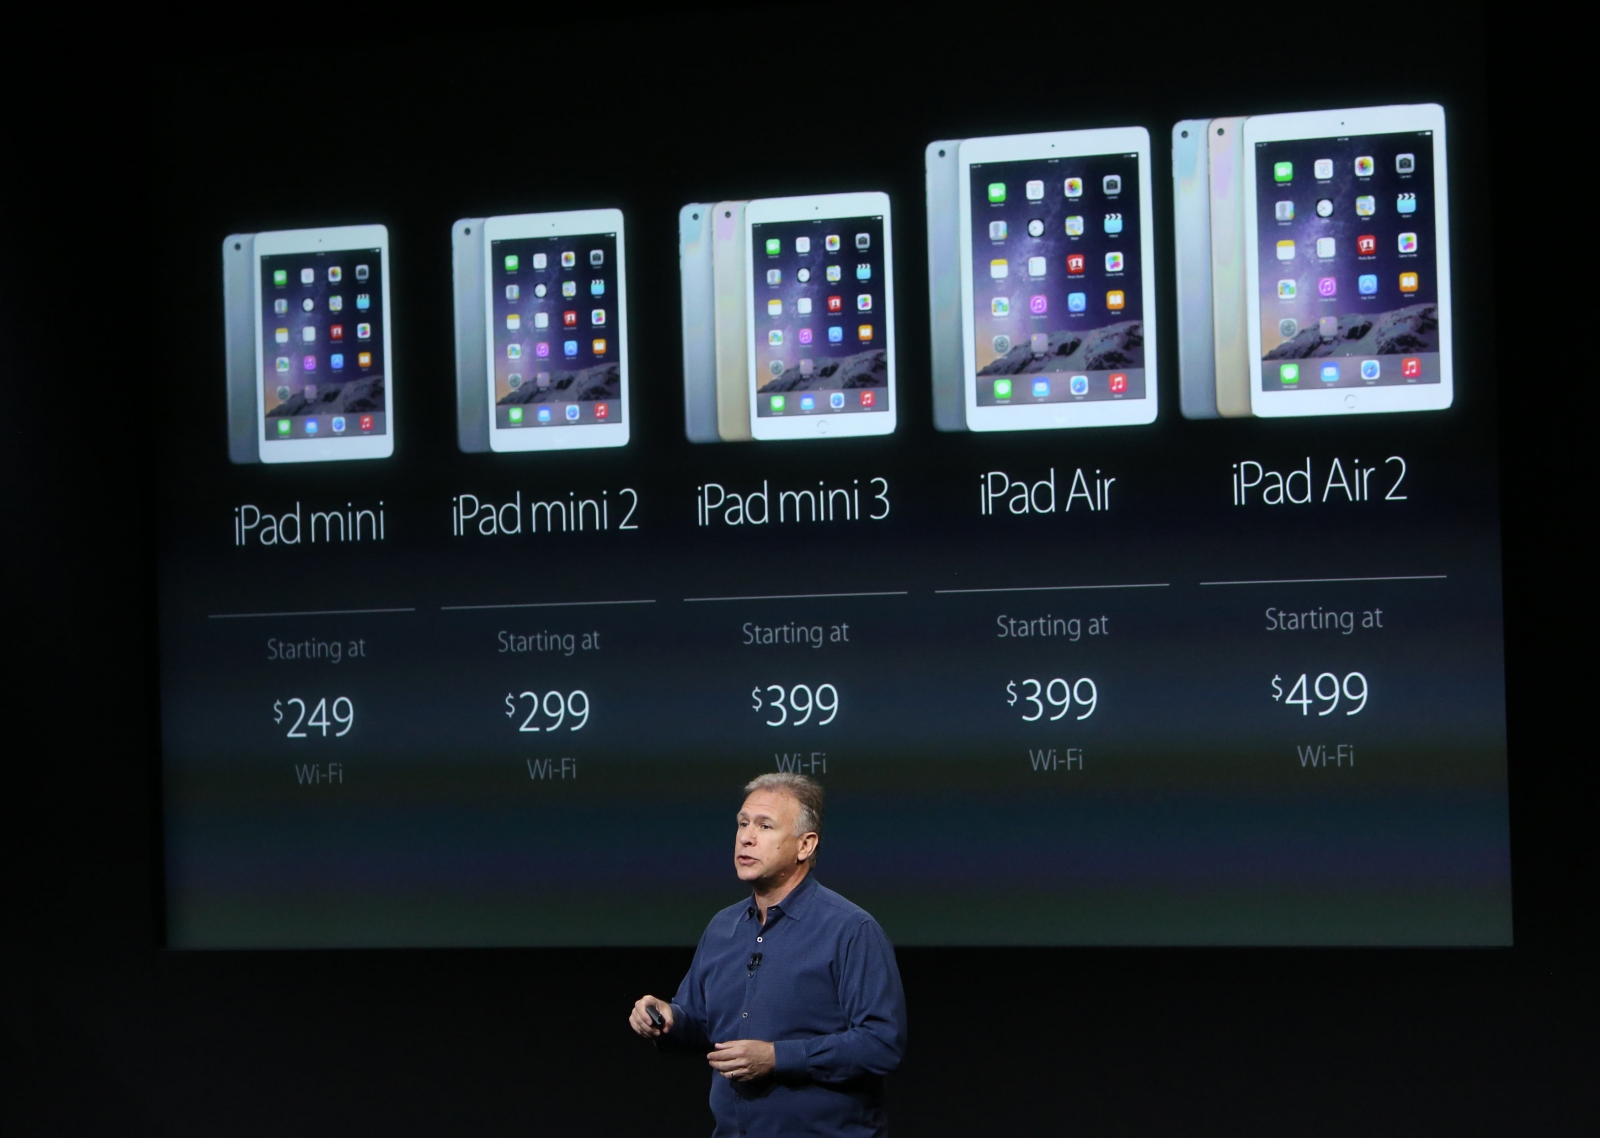 Phil Schiller, Apple's Senior Vice President of Worldwide Product Marketing speaks during a presentation of the new iPad at Apple headquarters in Cupertino, California October 16, 2014